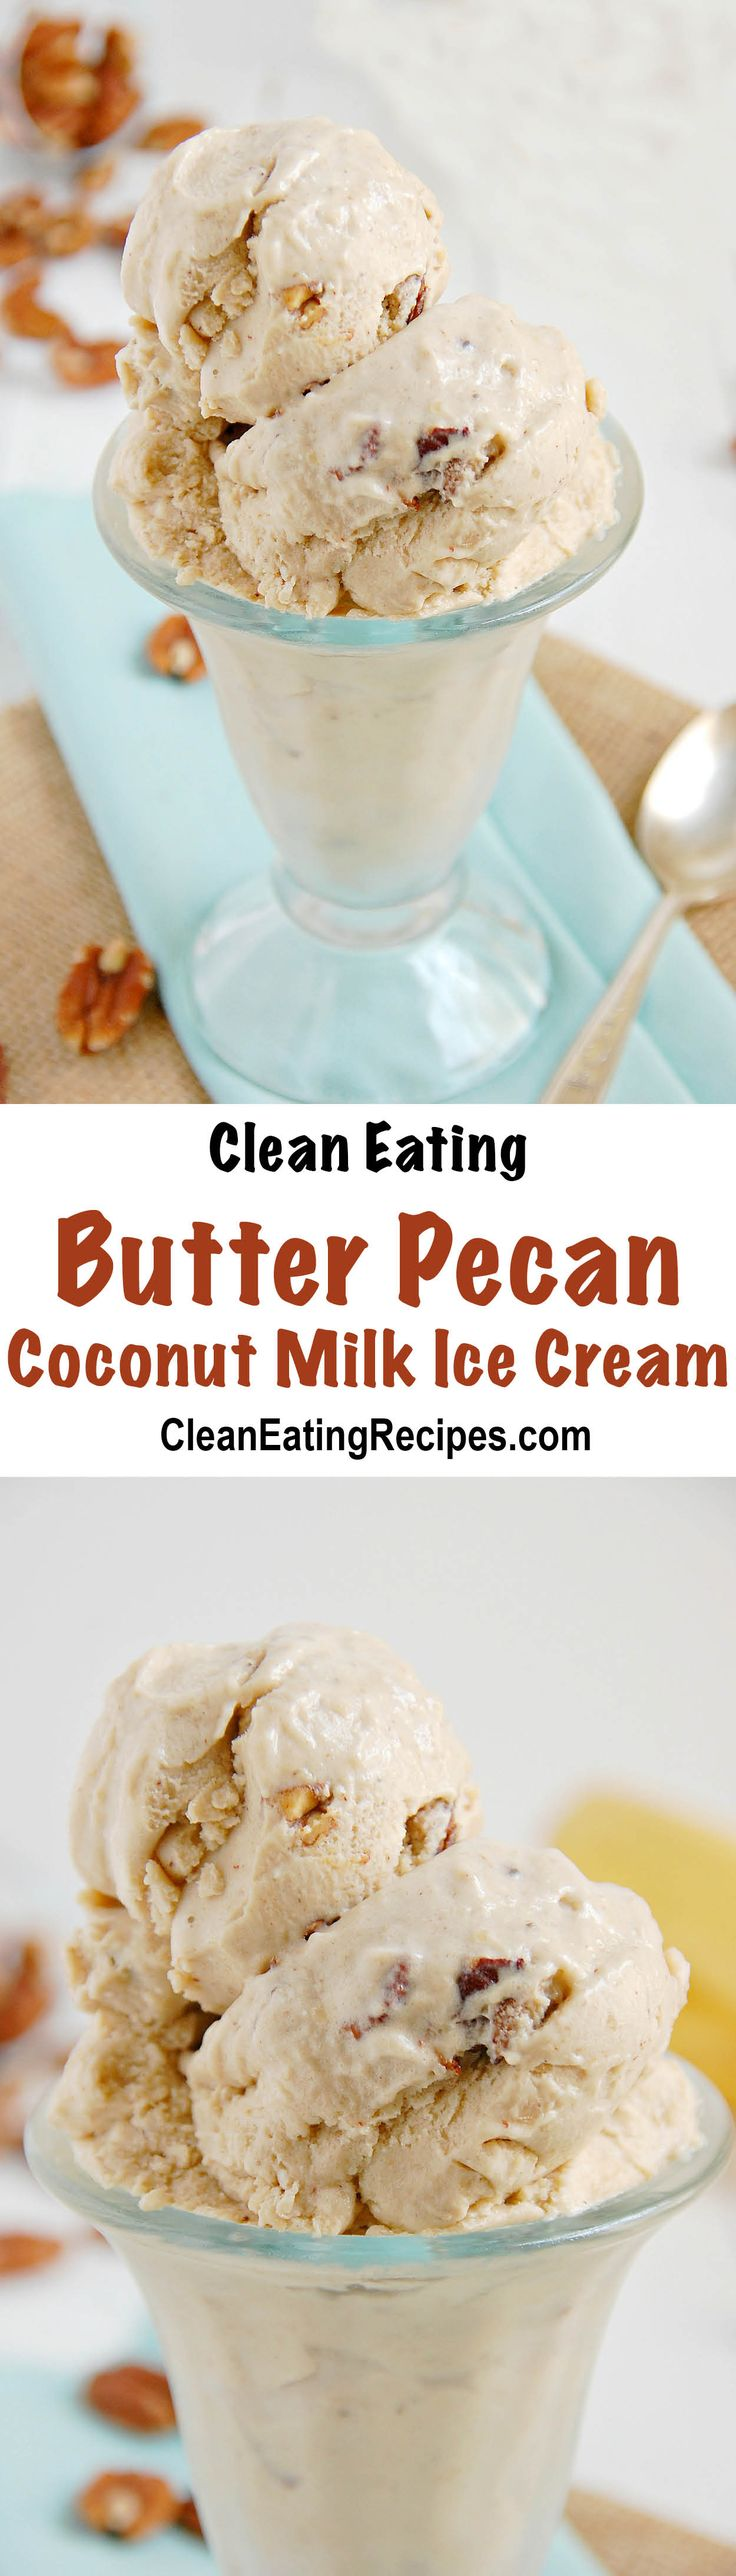 All you need is a blender and frozen bananas, coconut milk, butter, pecans. I can't believe how good this coconut milk ice cream tastes!